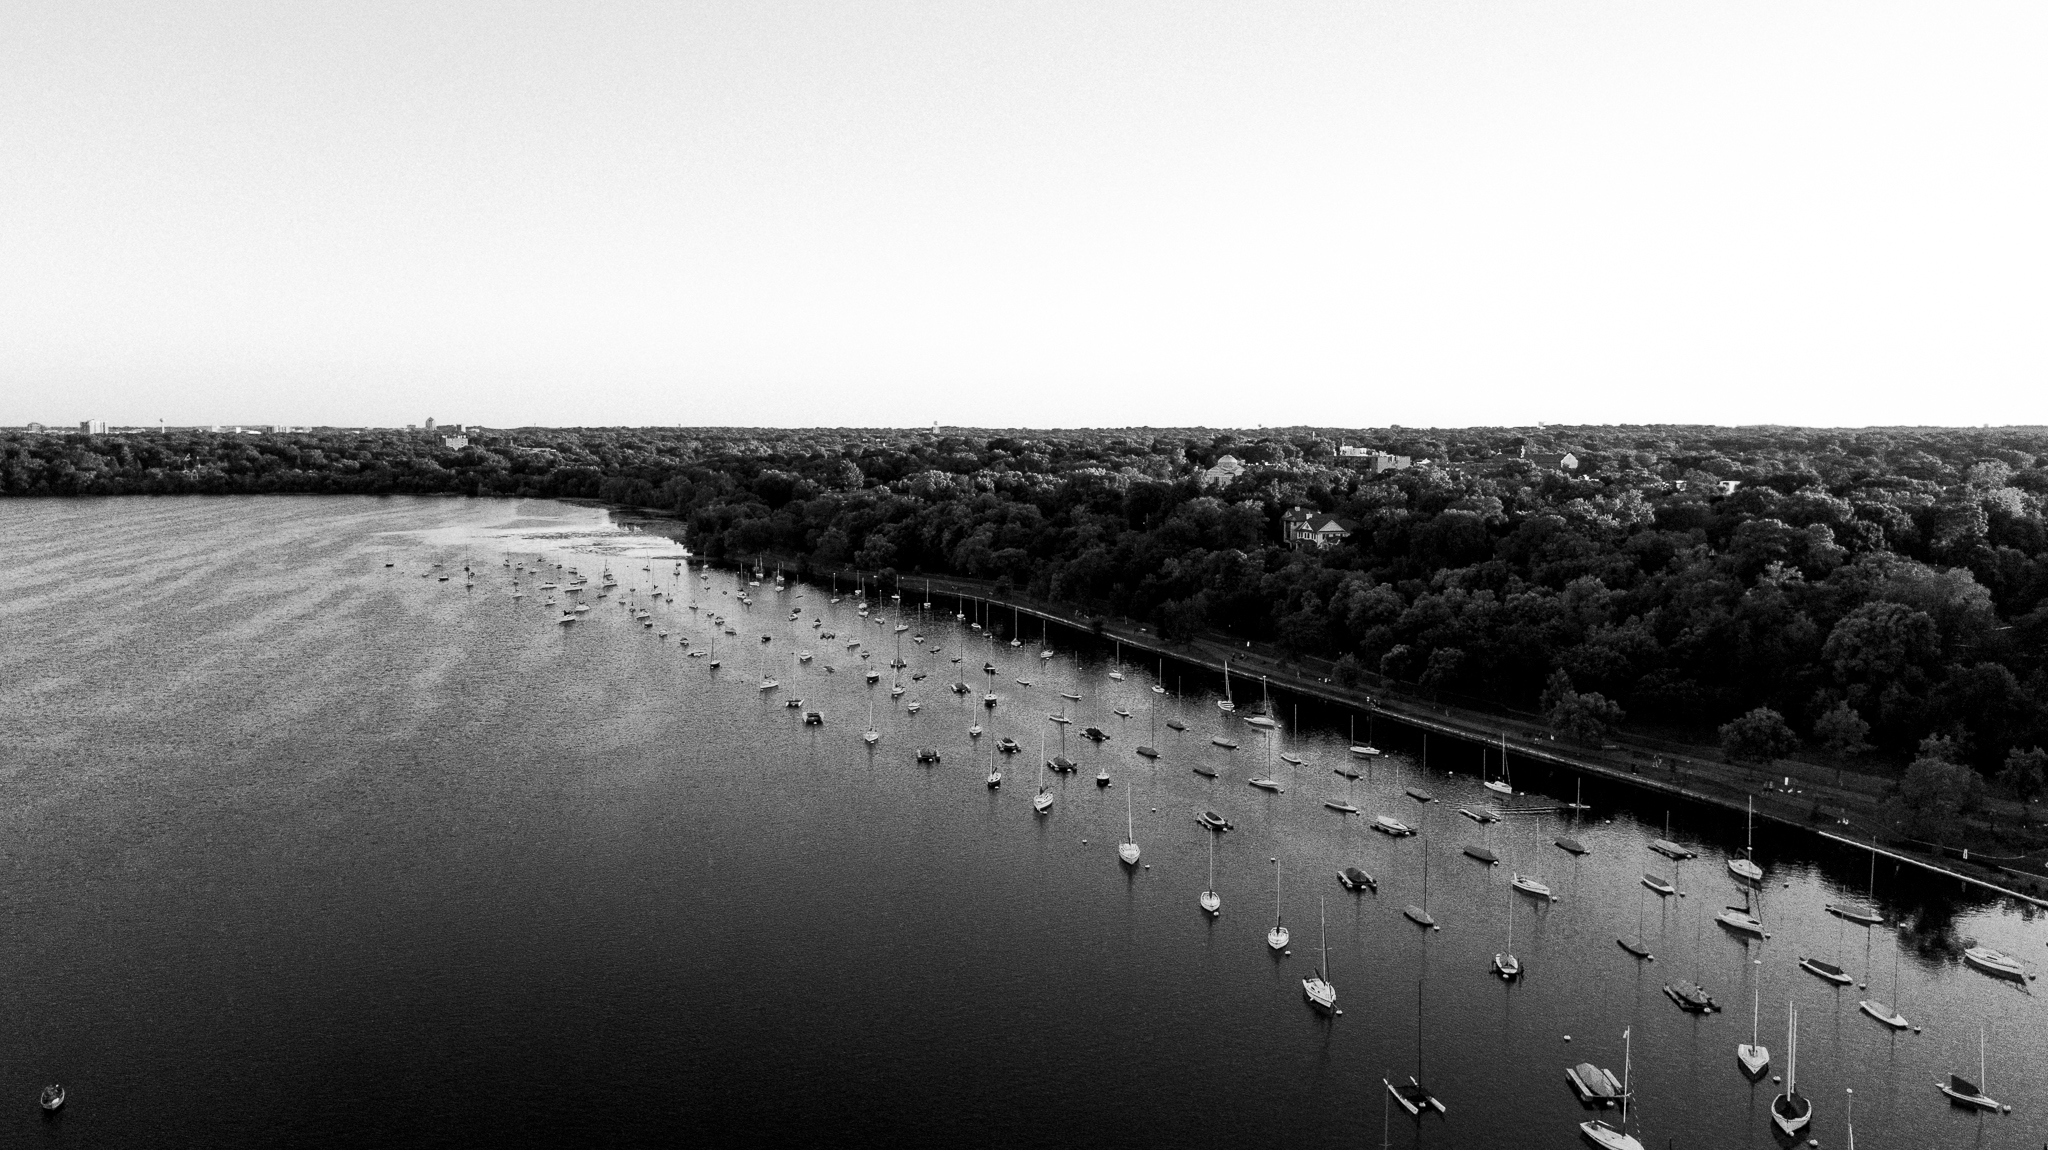 Mavic Pro Drone Photographs over Lake Harriet in Minneapolis, Minnesota